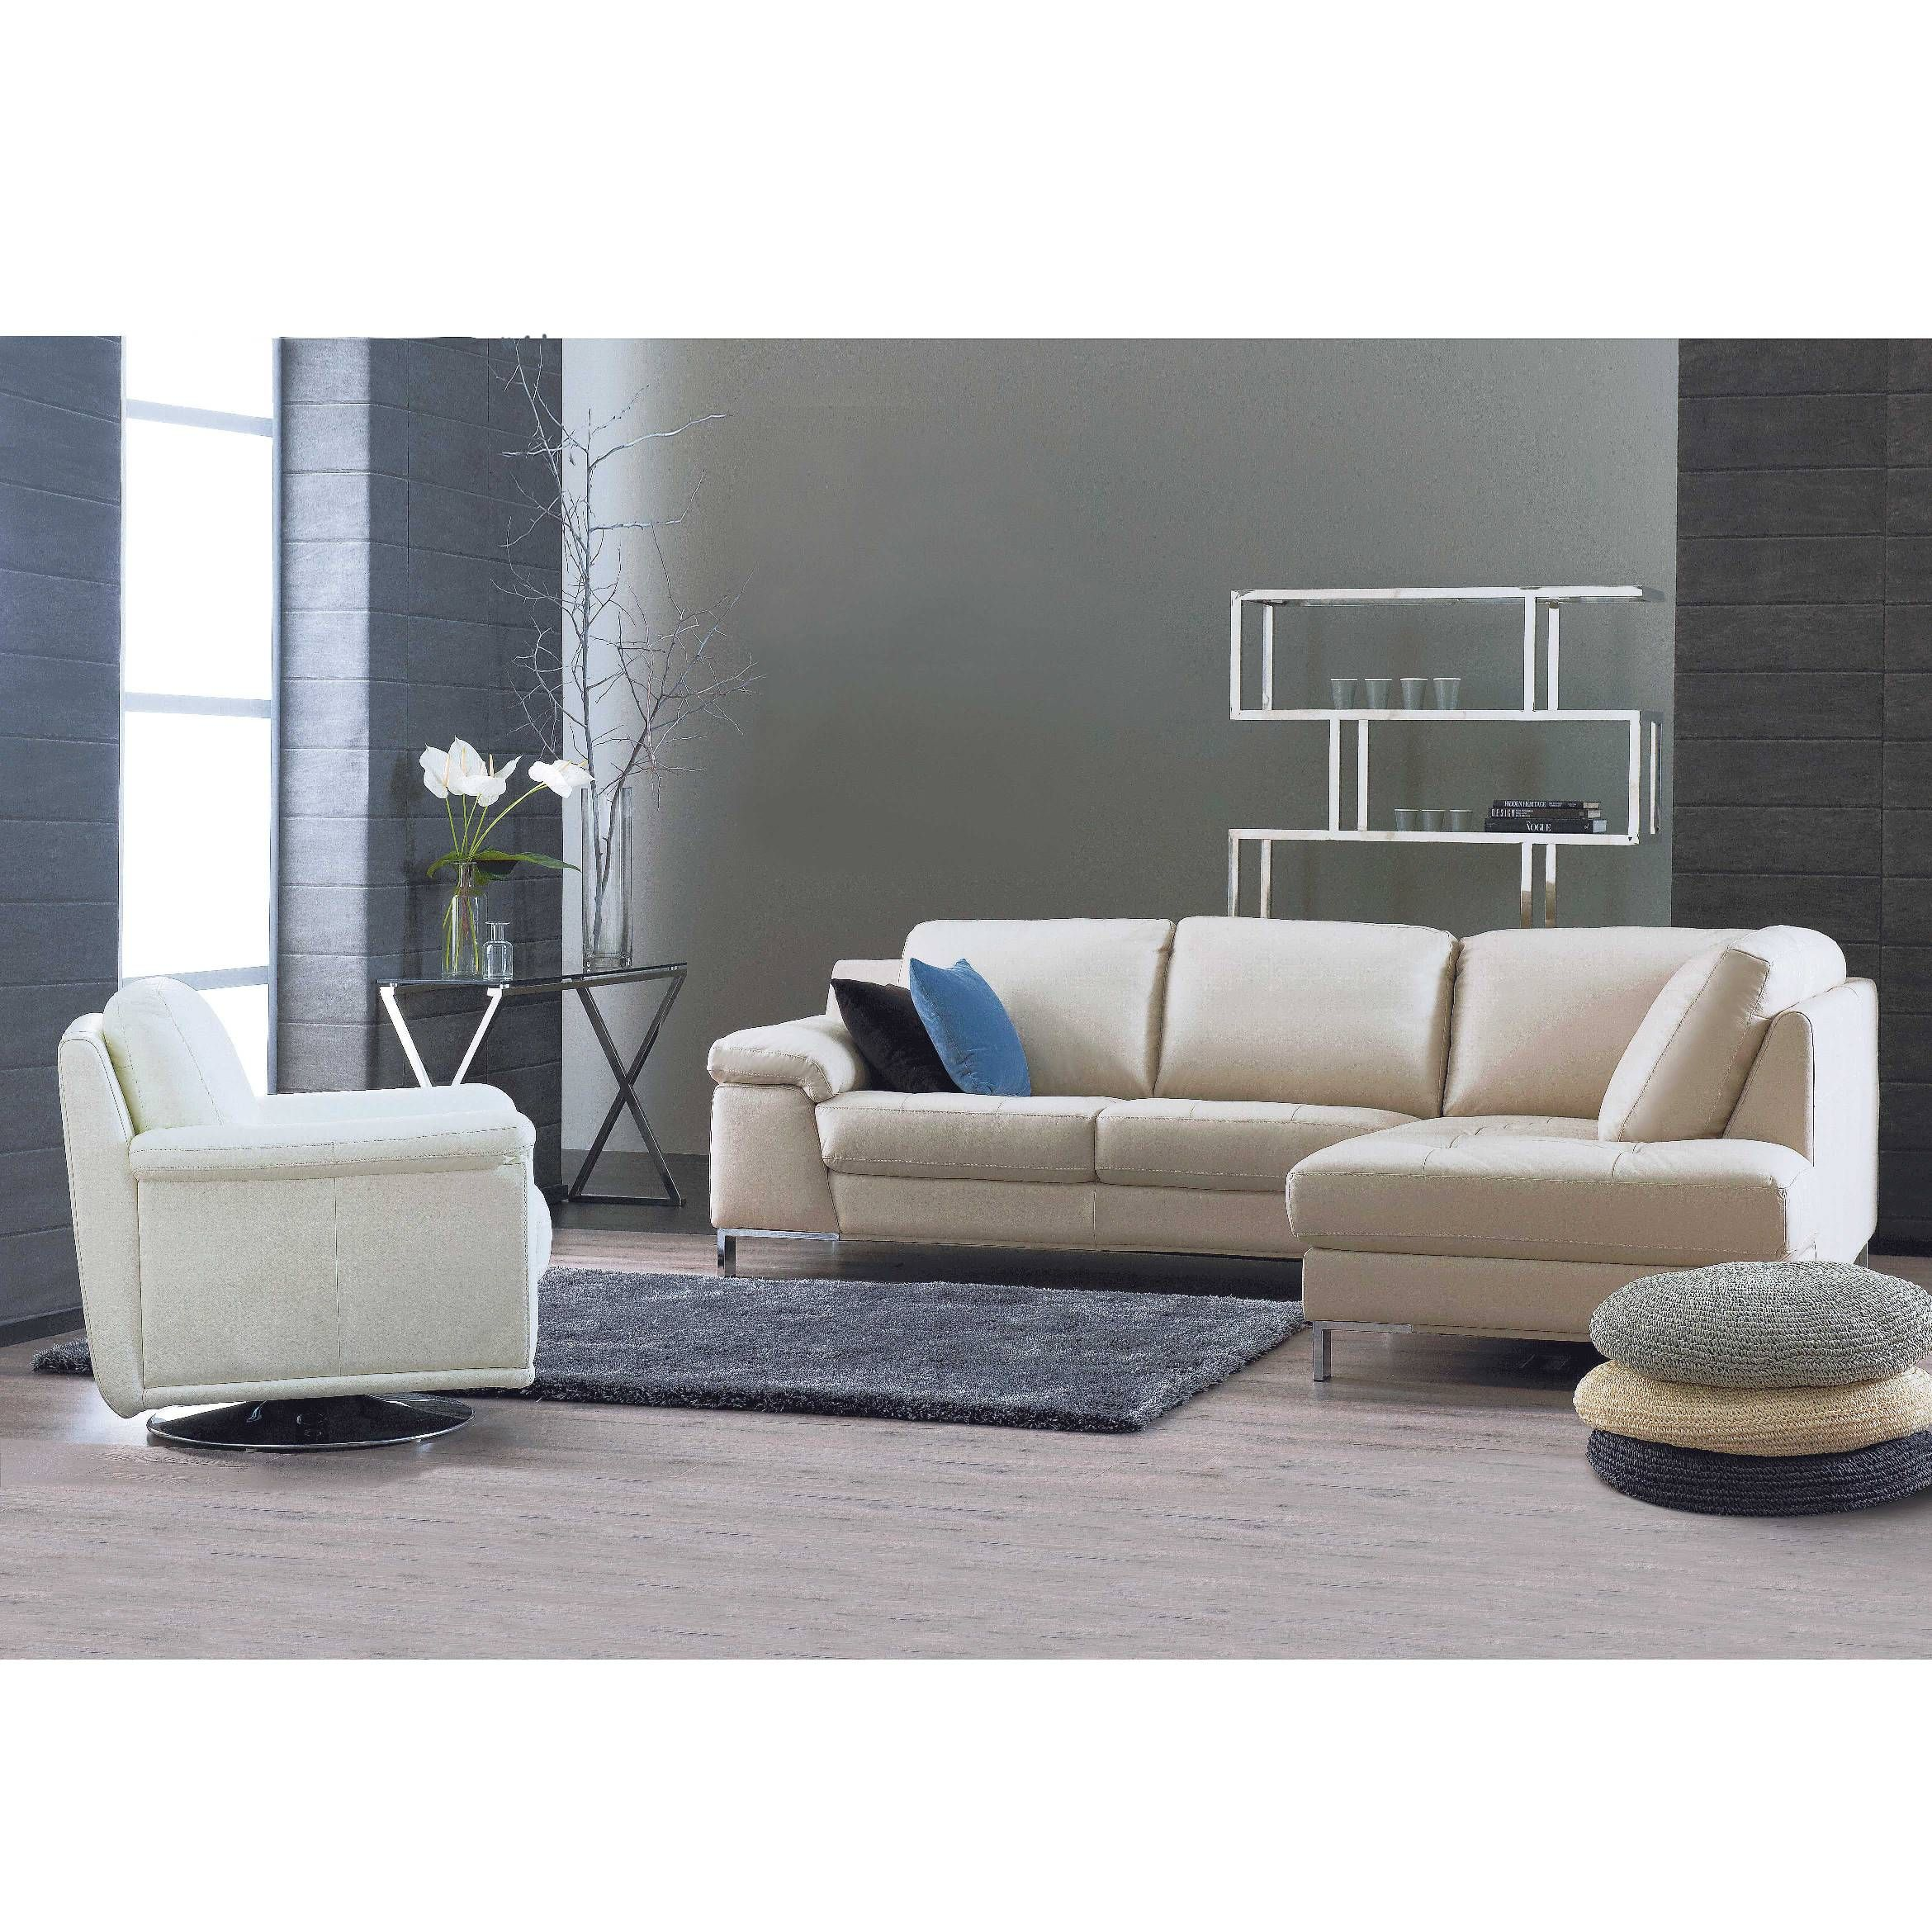 2 Seater Bedroom Sofa: Diva 2.5 Seater Leather Sofa With Chaise And Swivel Chair